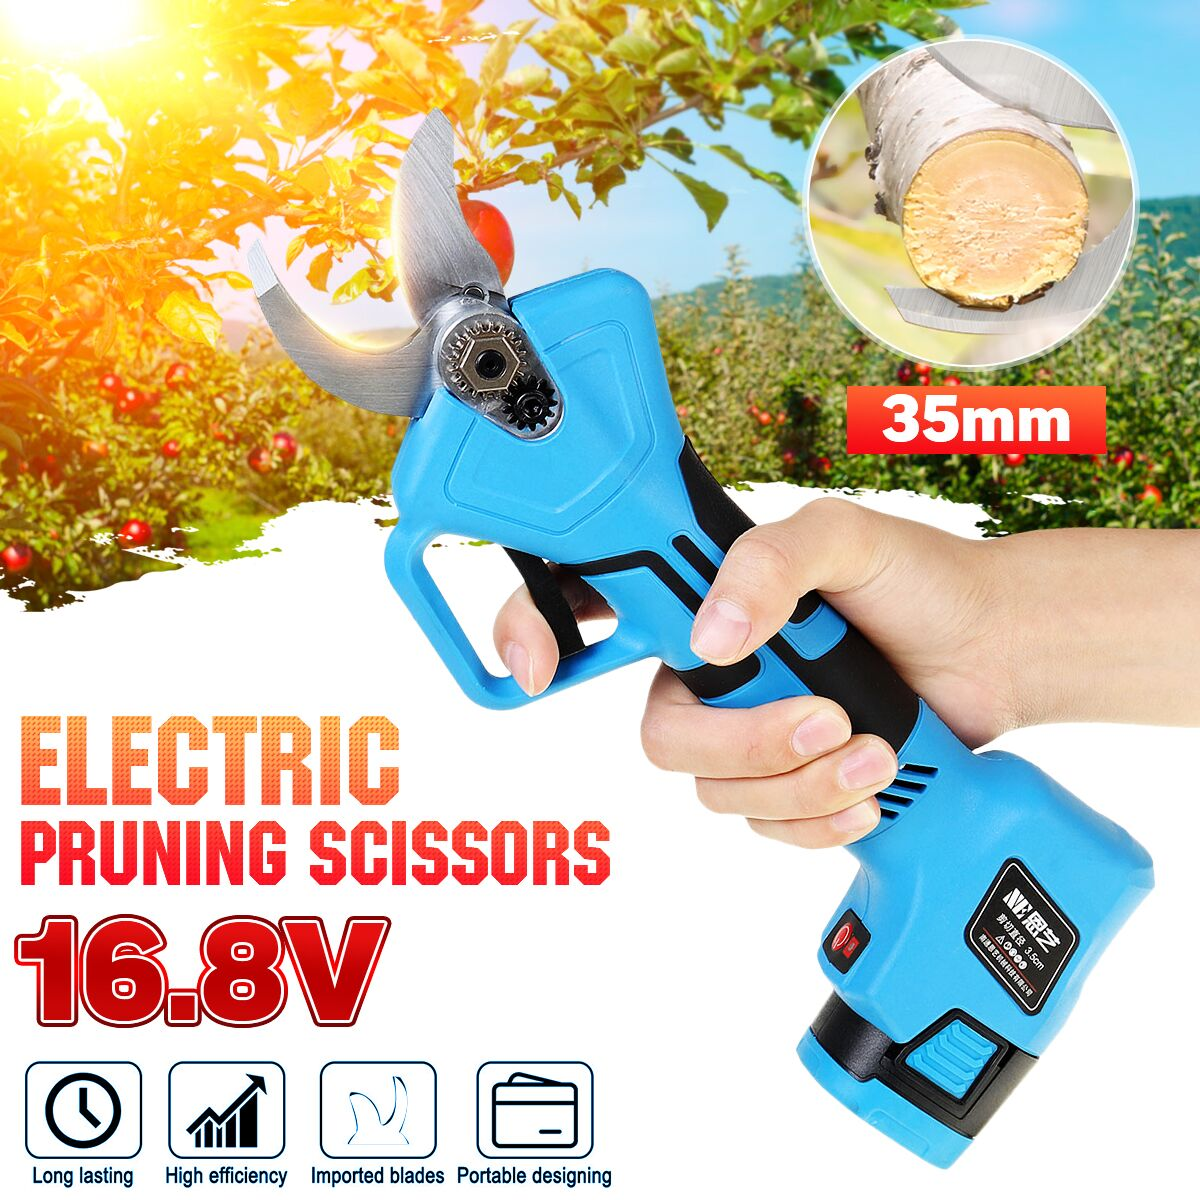 W/2 Batterys Electric Pruning Scissors Pruning Shears Garden Pruner Secateur Branch Cutter Cutting Tool 16.8V 500W Rechargeable